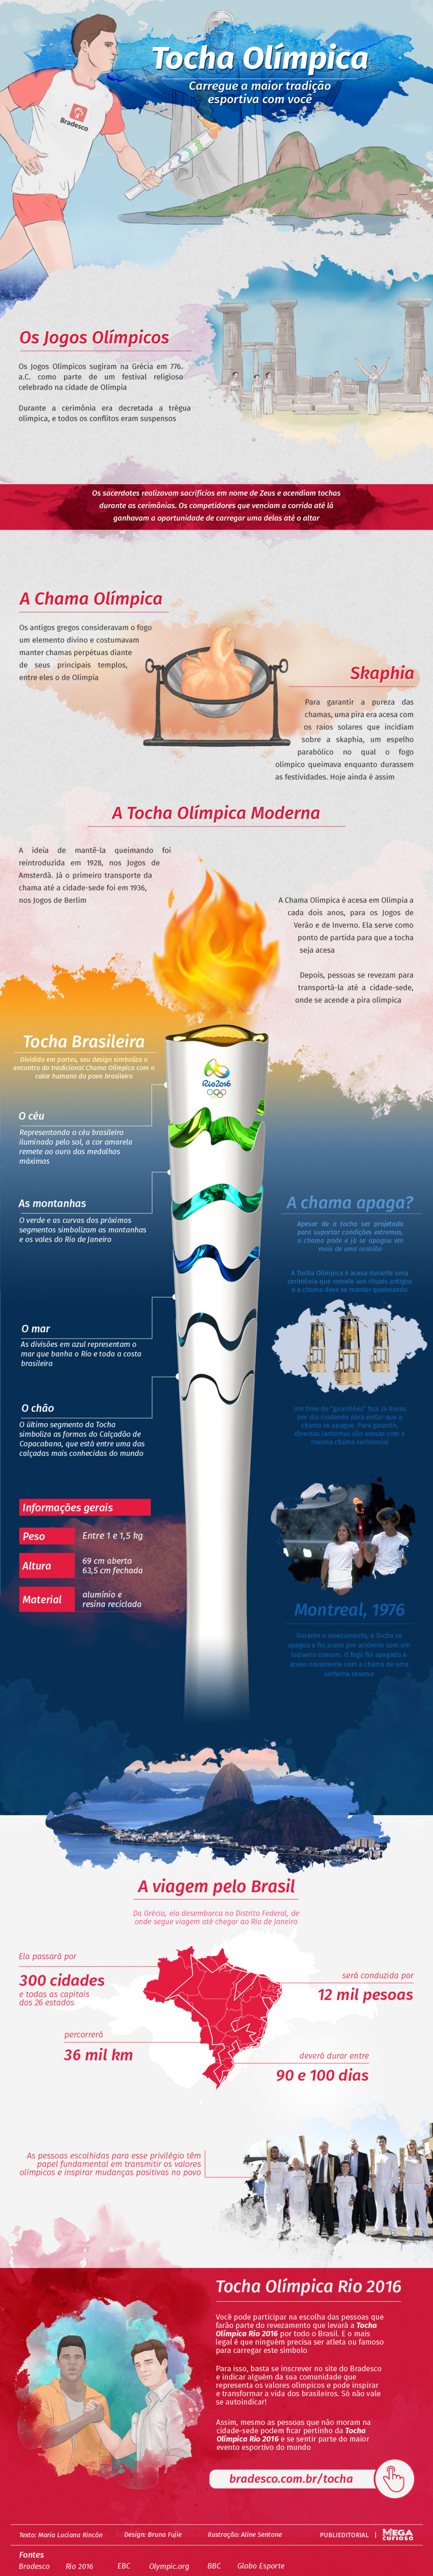 Tocha Olímpica / Olympic Torch Infographic